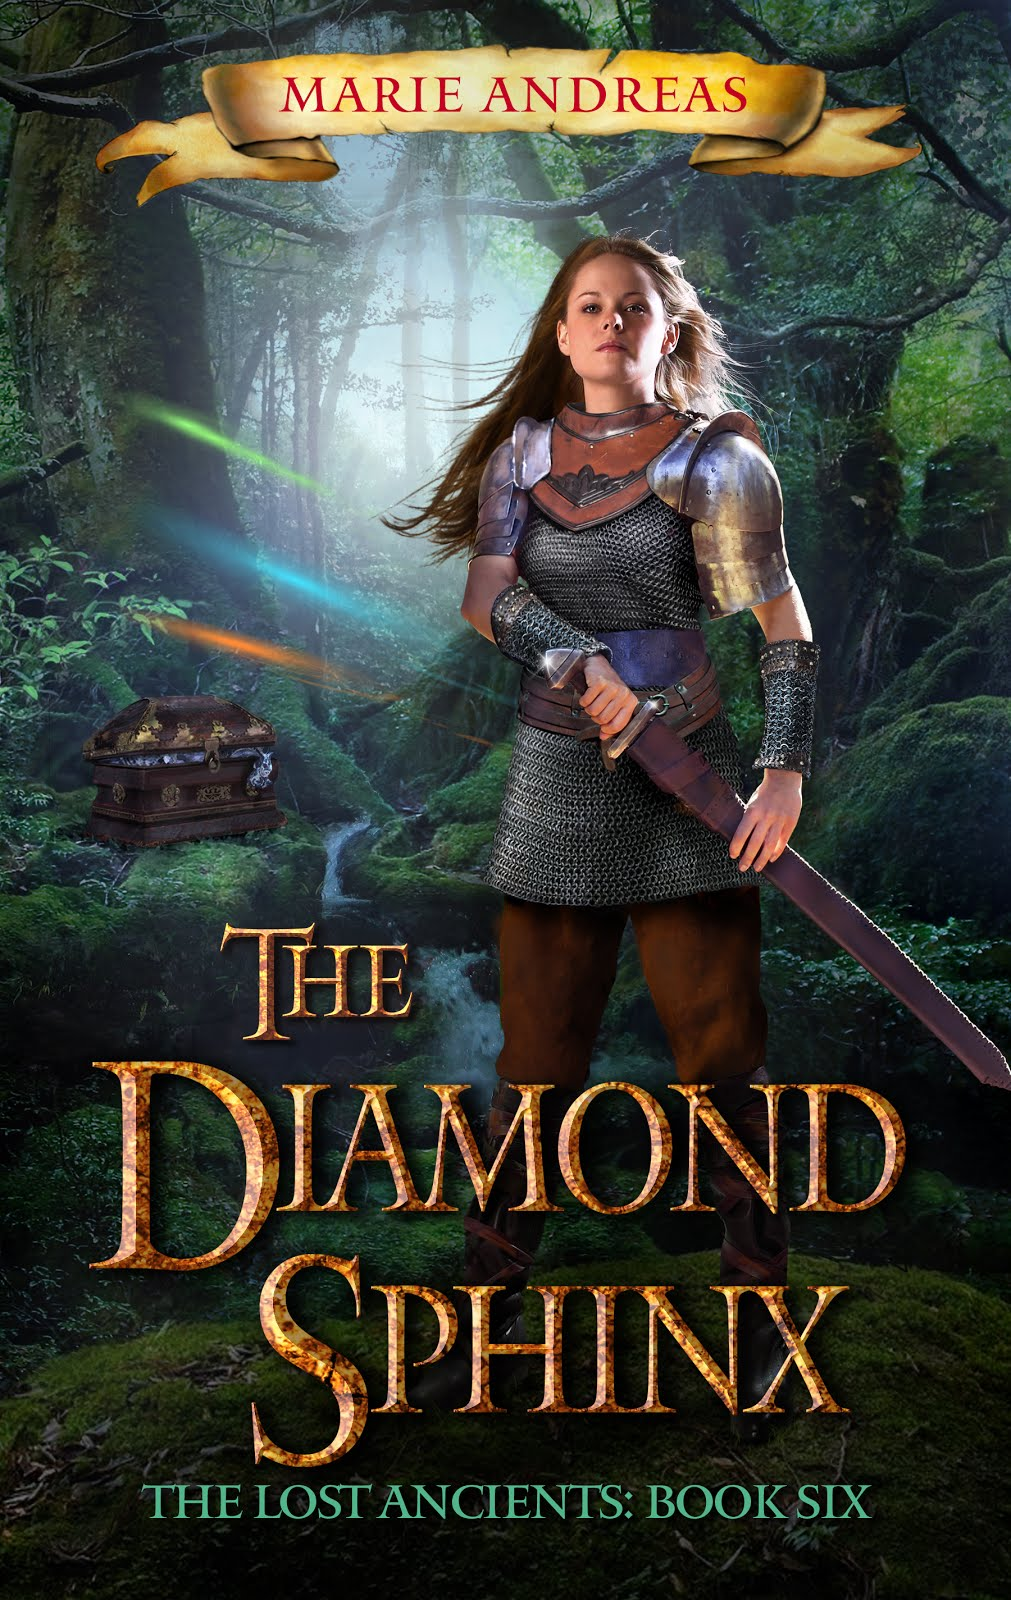 The final book in the Lost Ancients series!